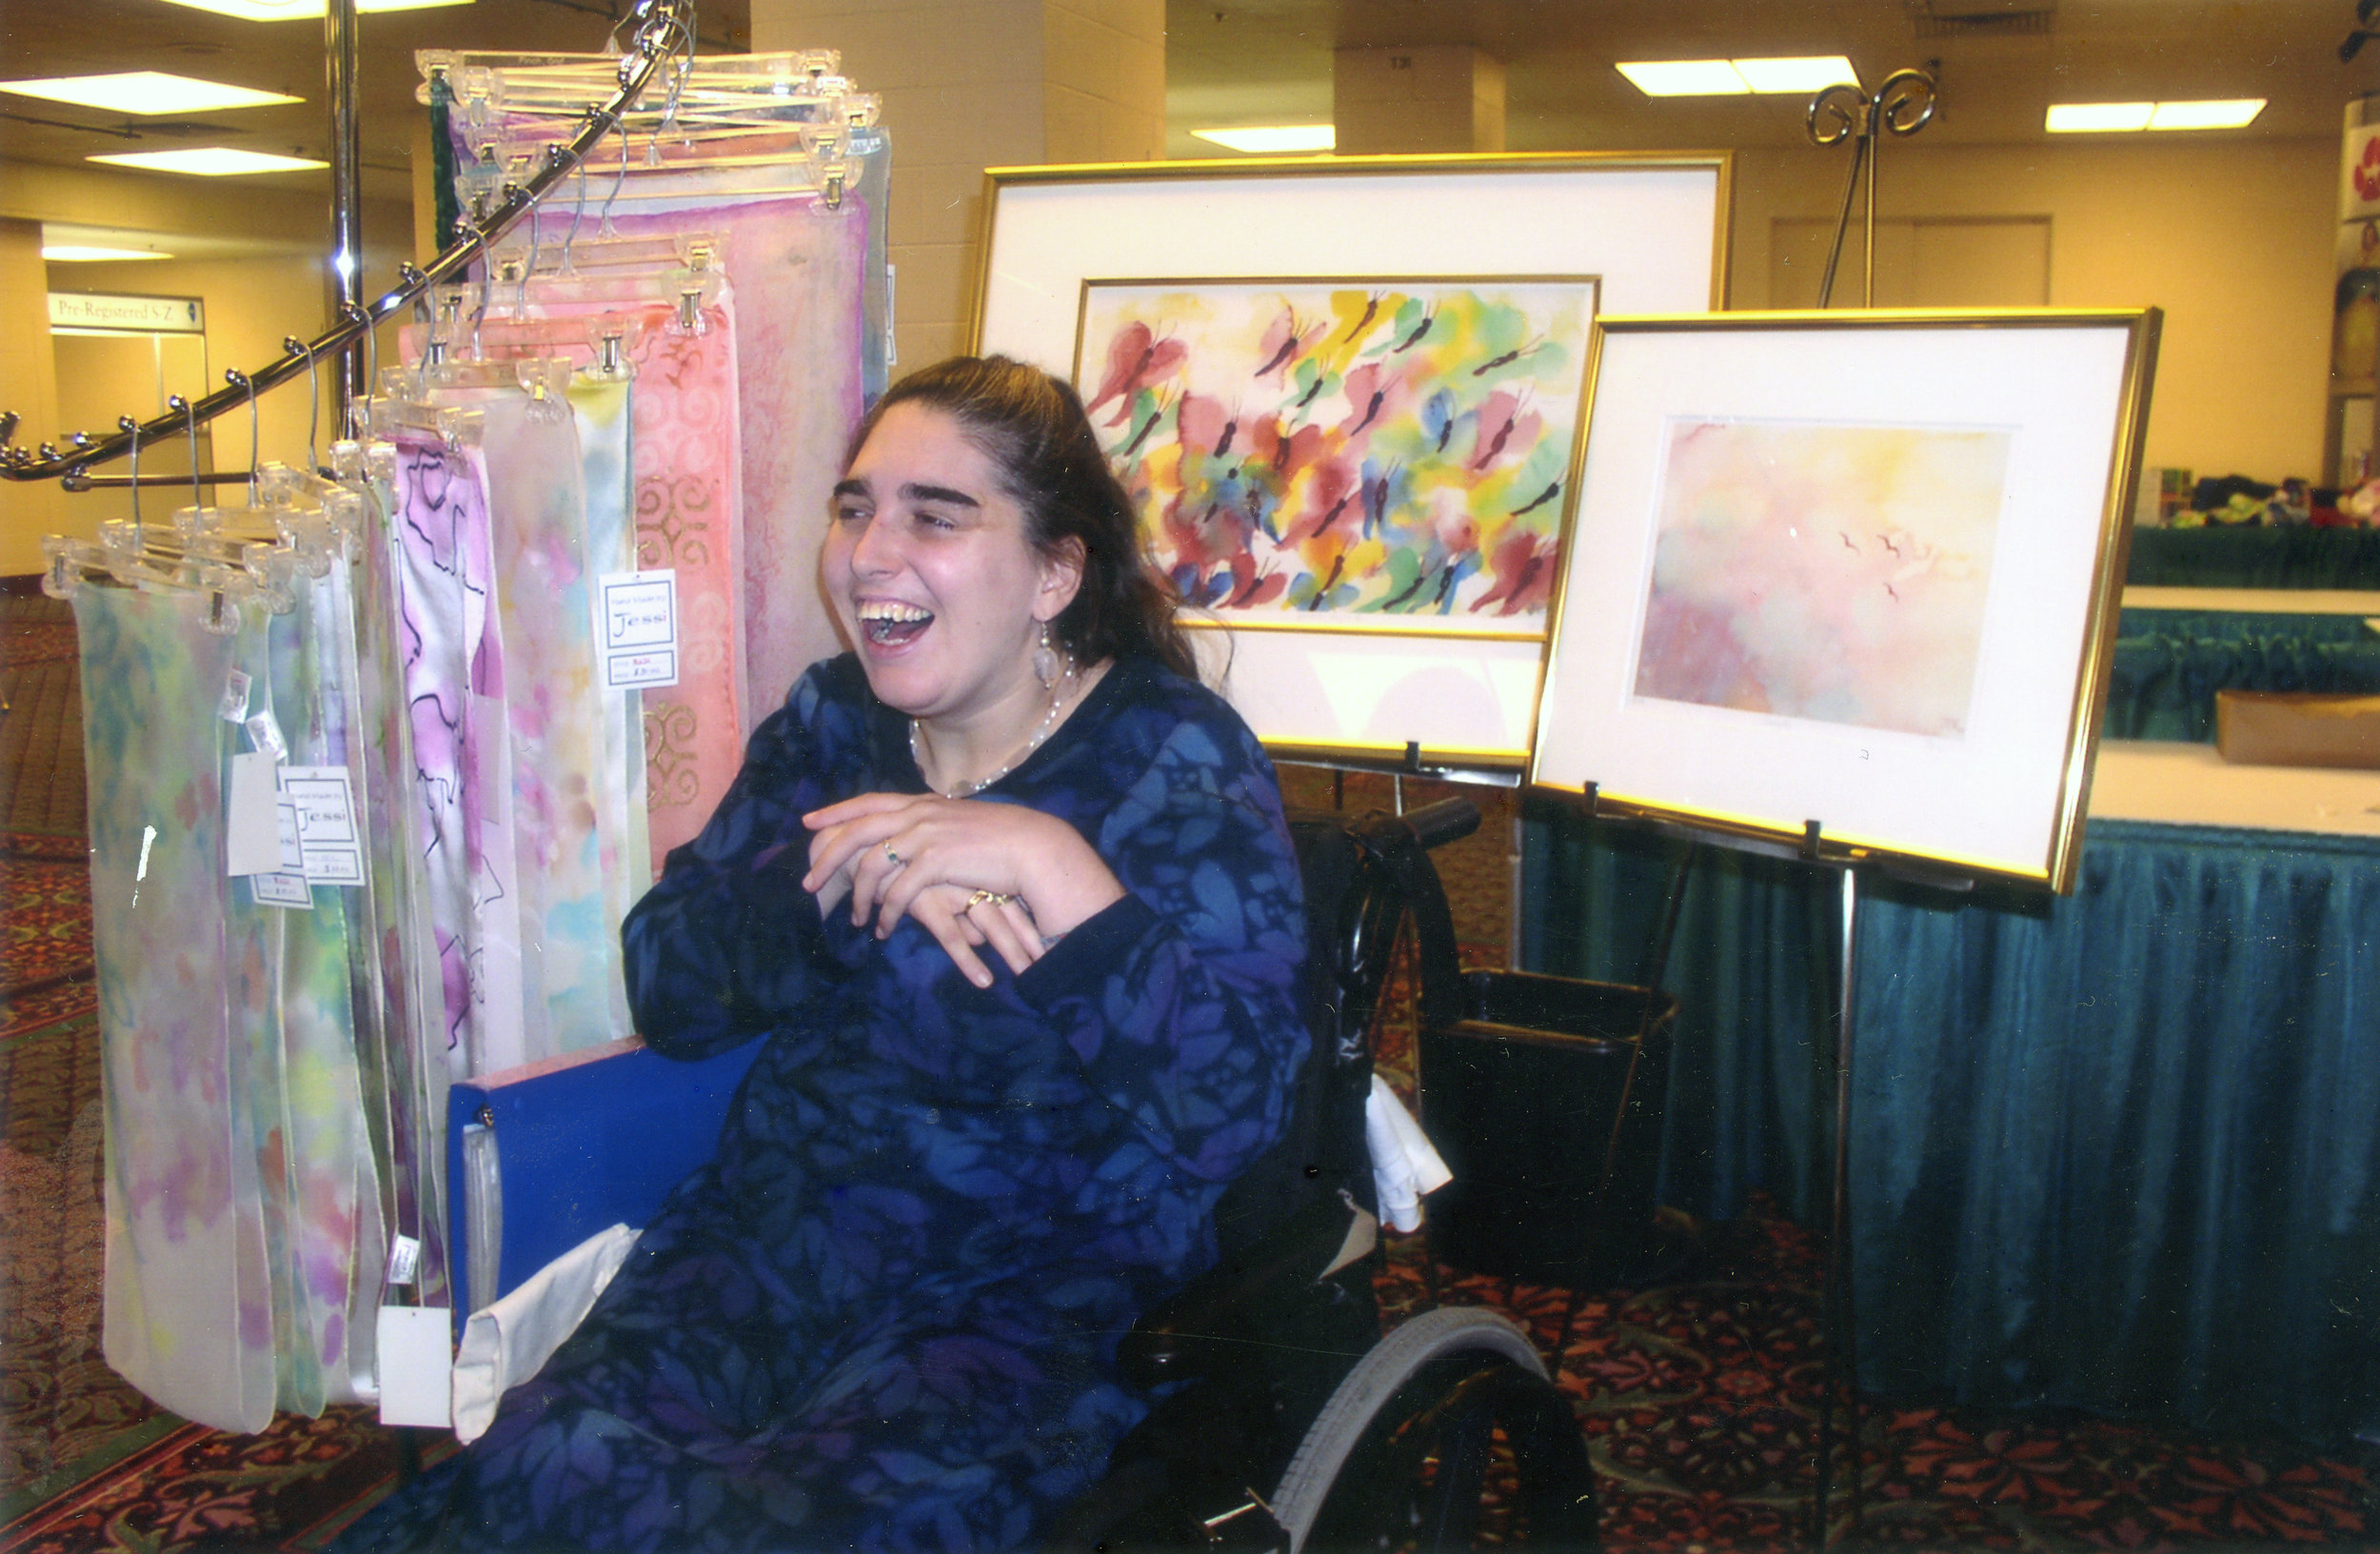 Tash Conference Chicago, 2003  - International conference focusing on full inclusion for people who have disabilities.